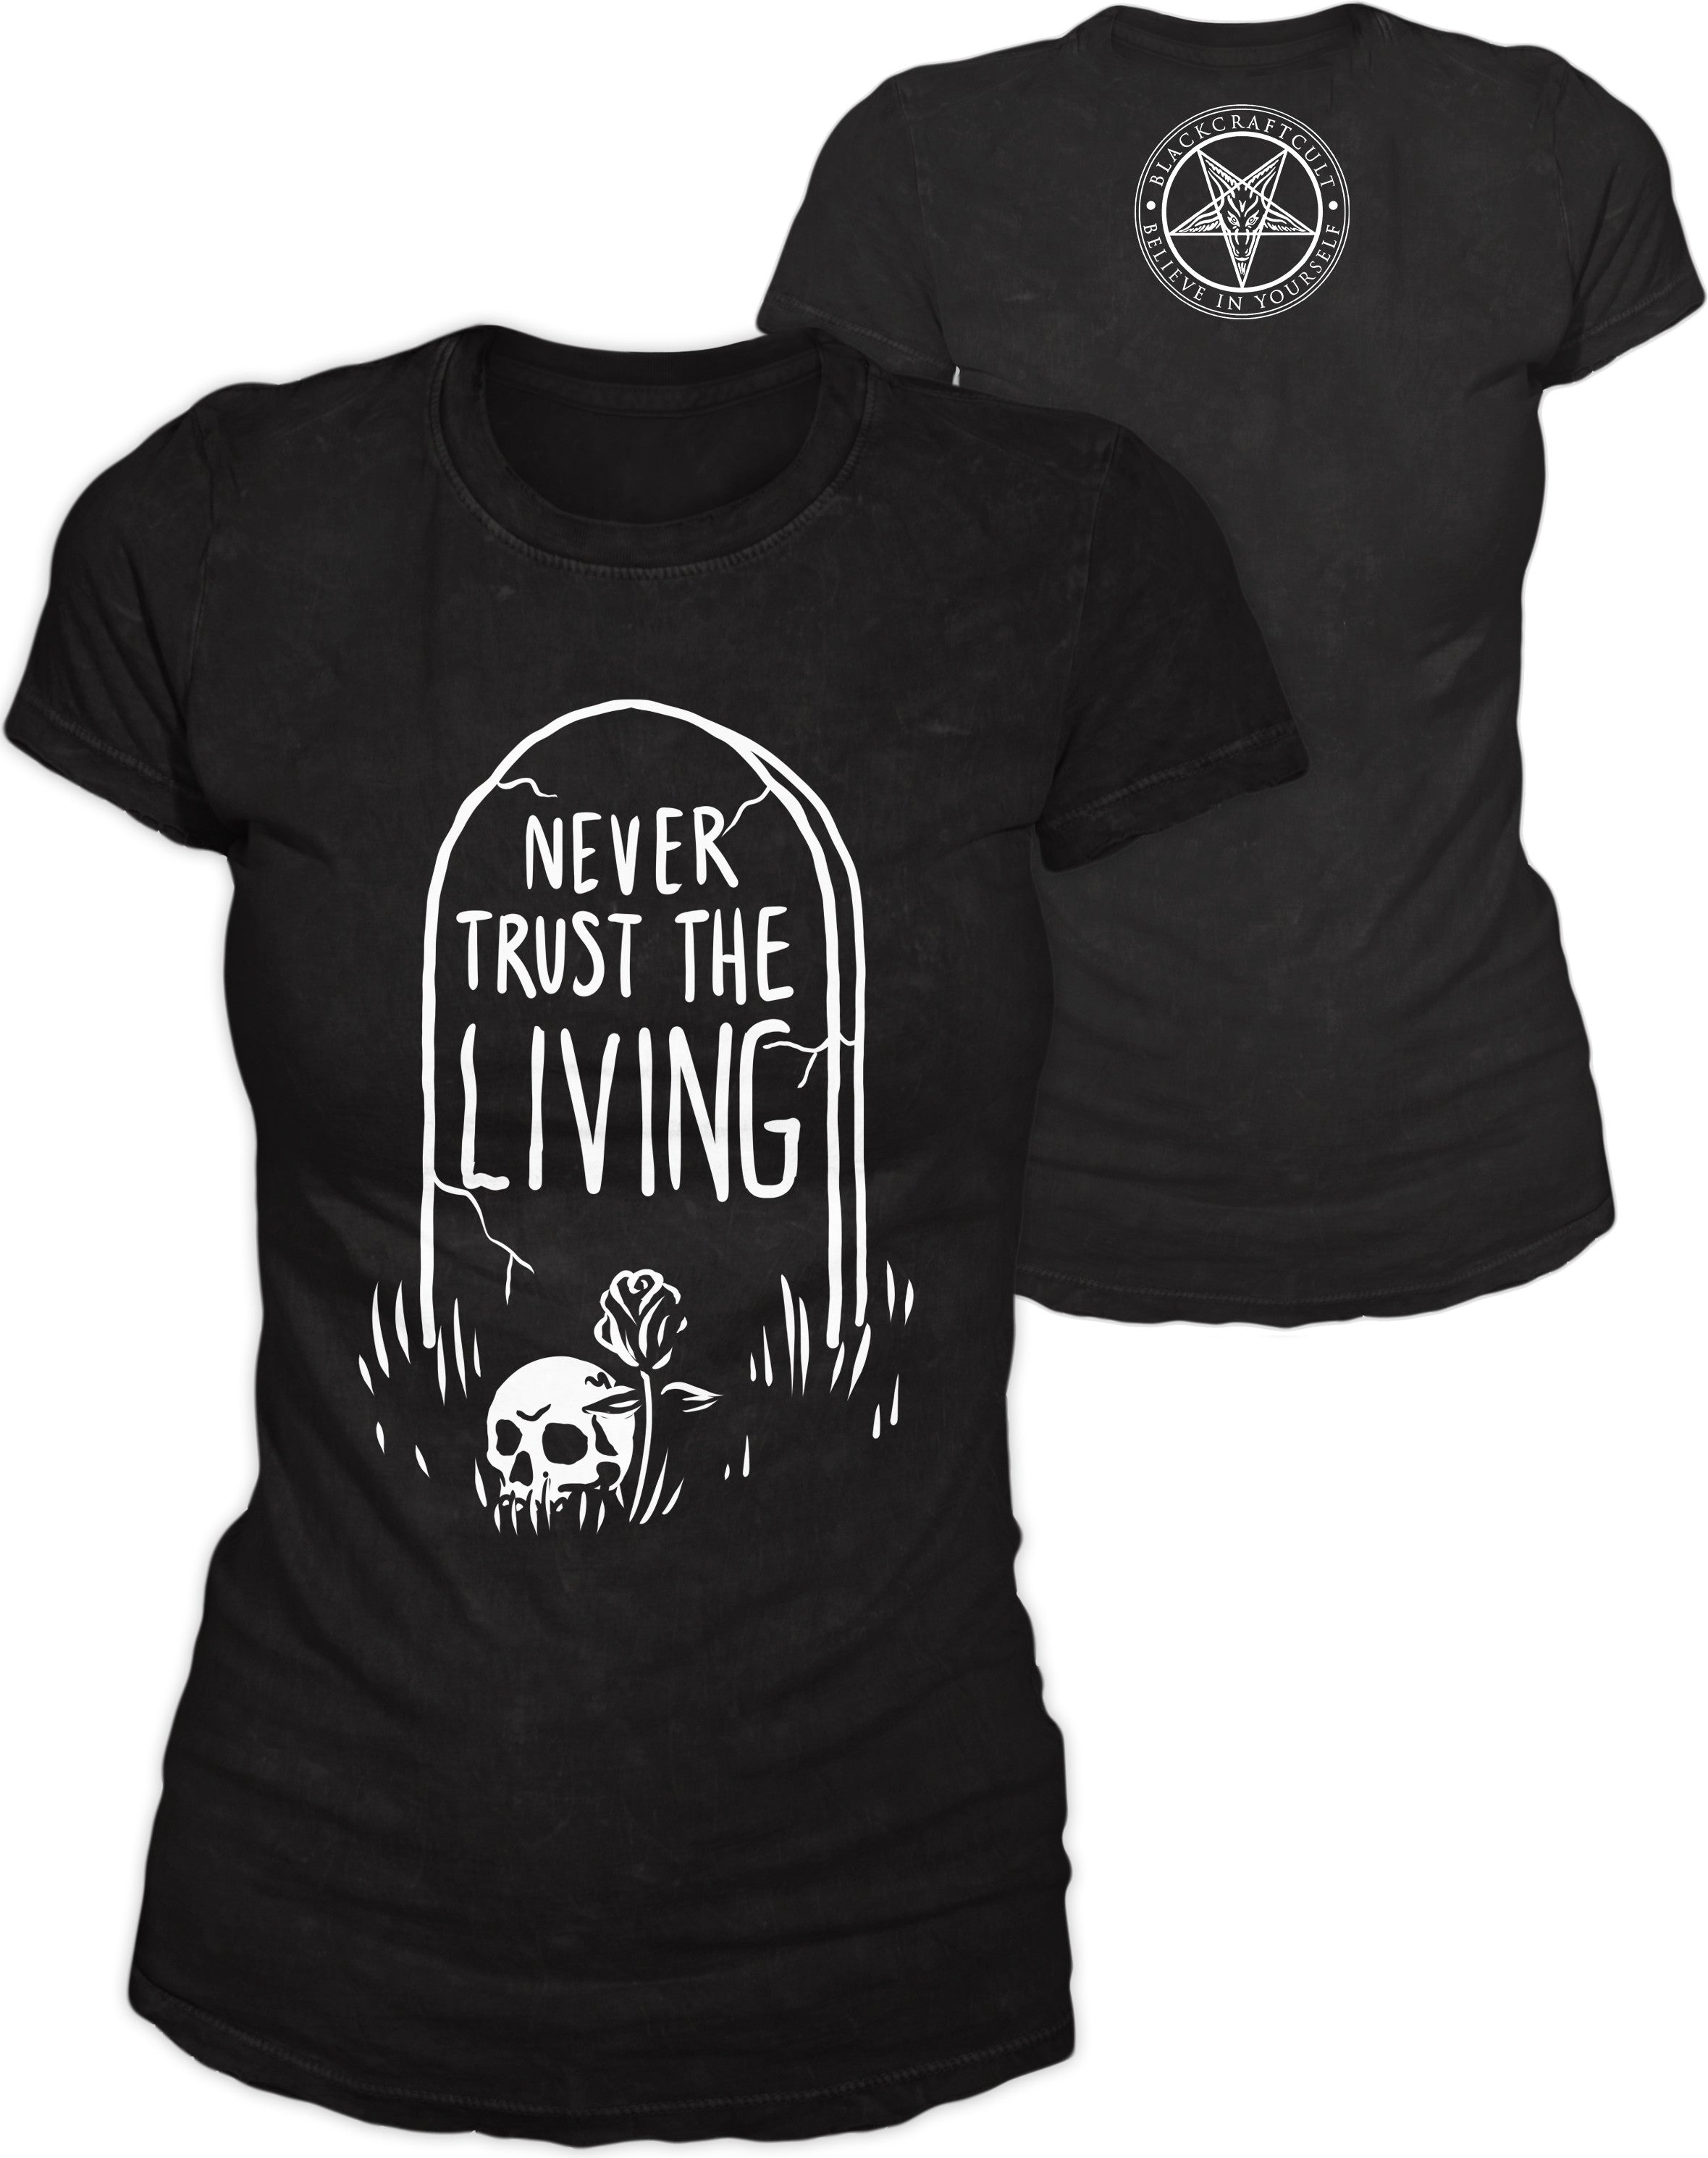 Never Trust The Living - Women's Tee